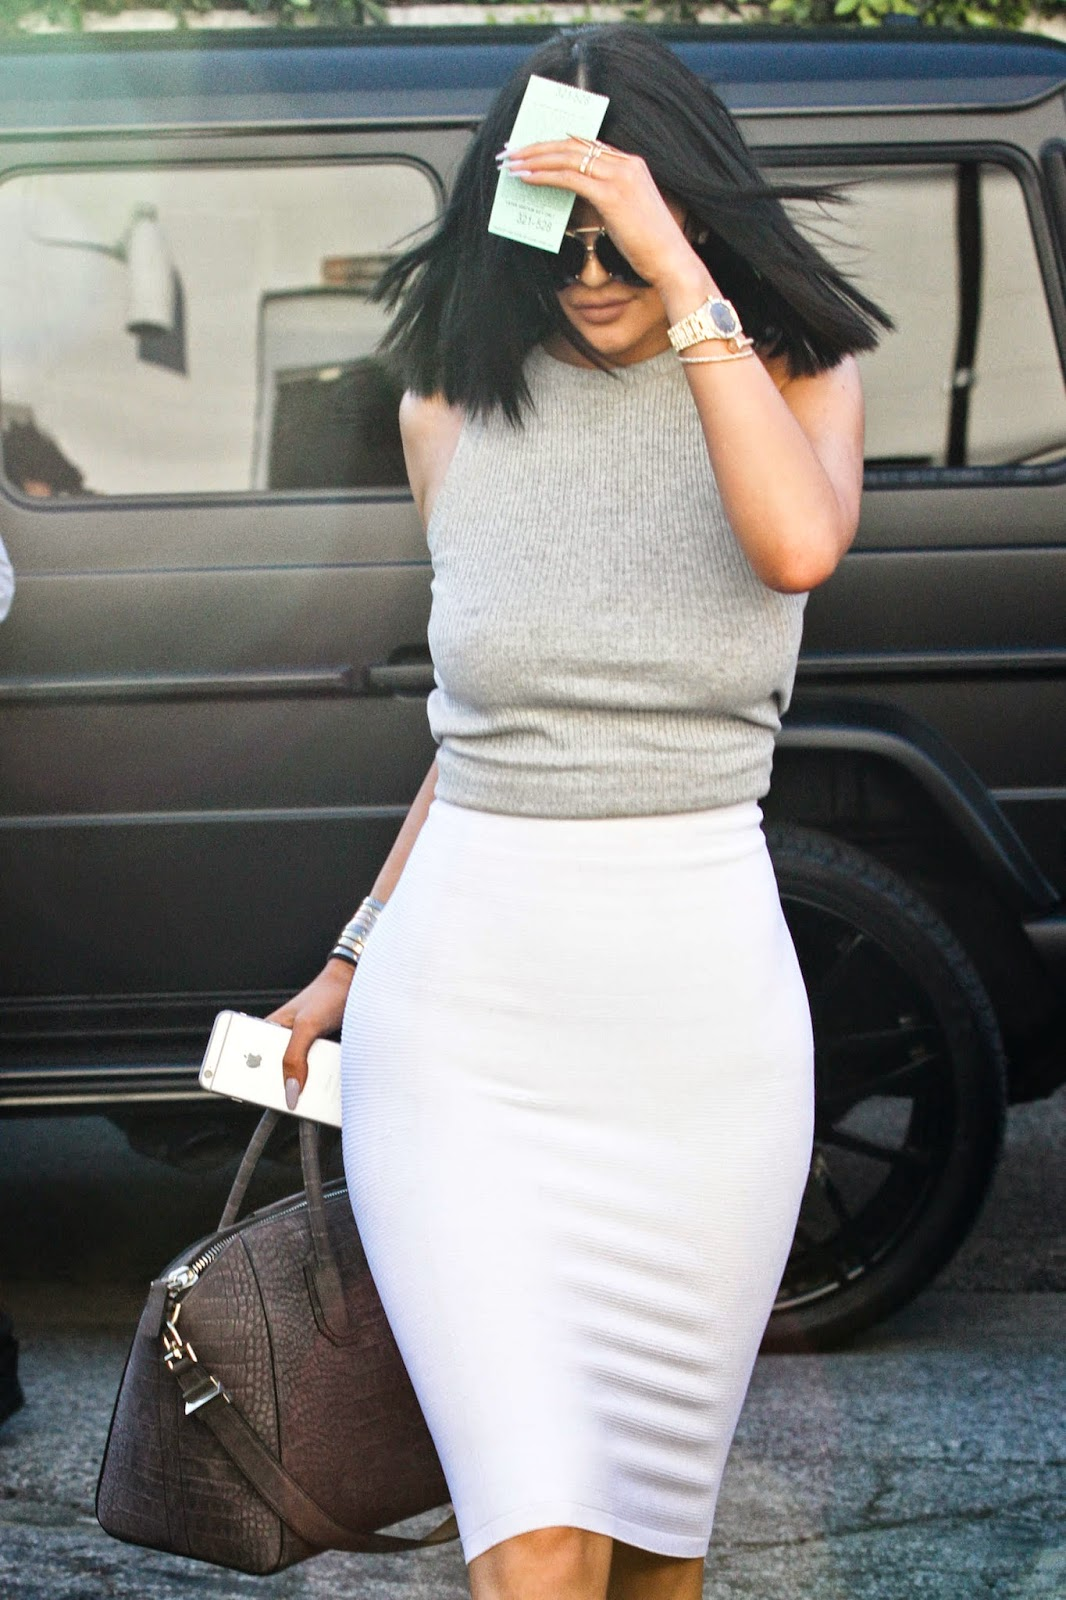 Kylie Jenner dresses up like sister Kim Kardashian in LA